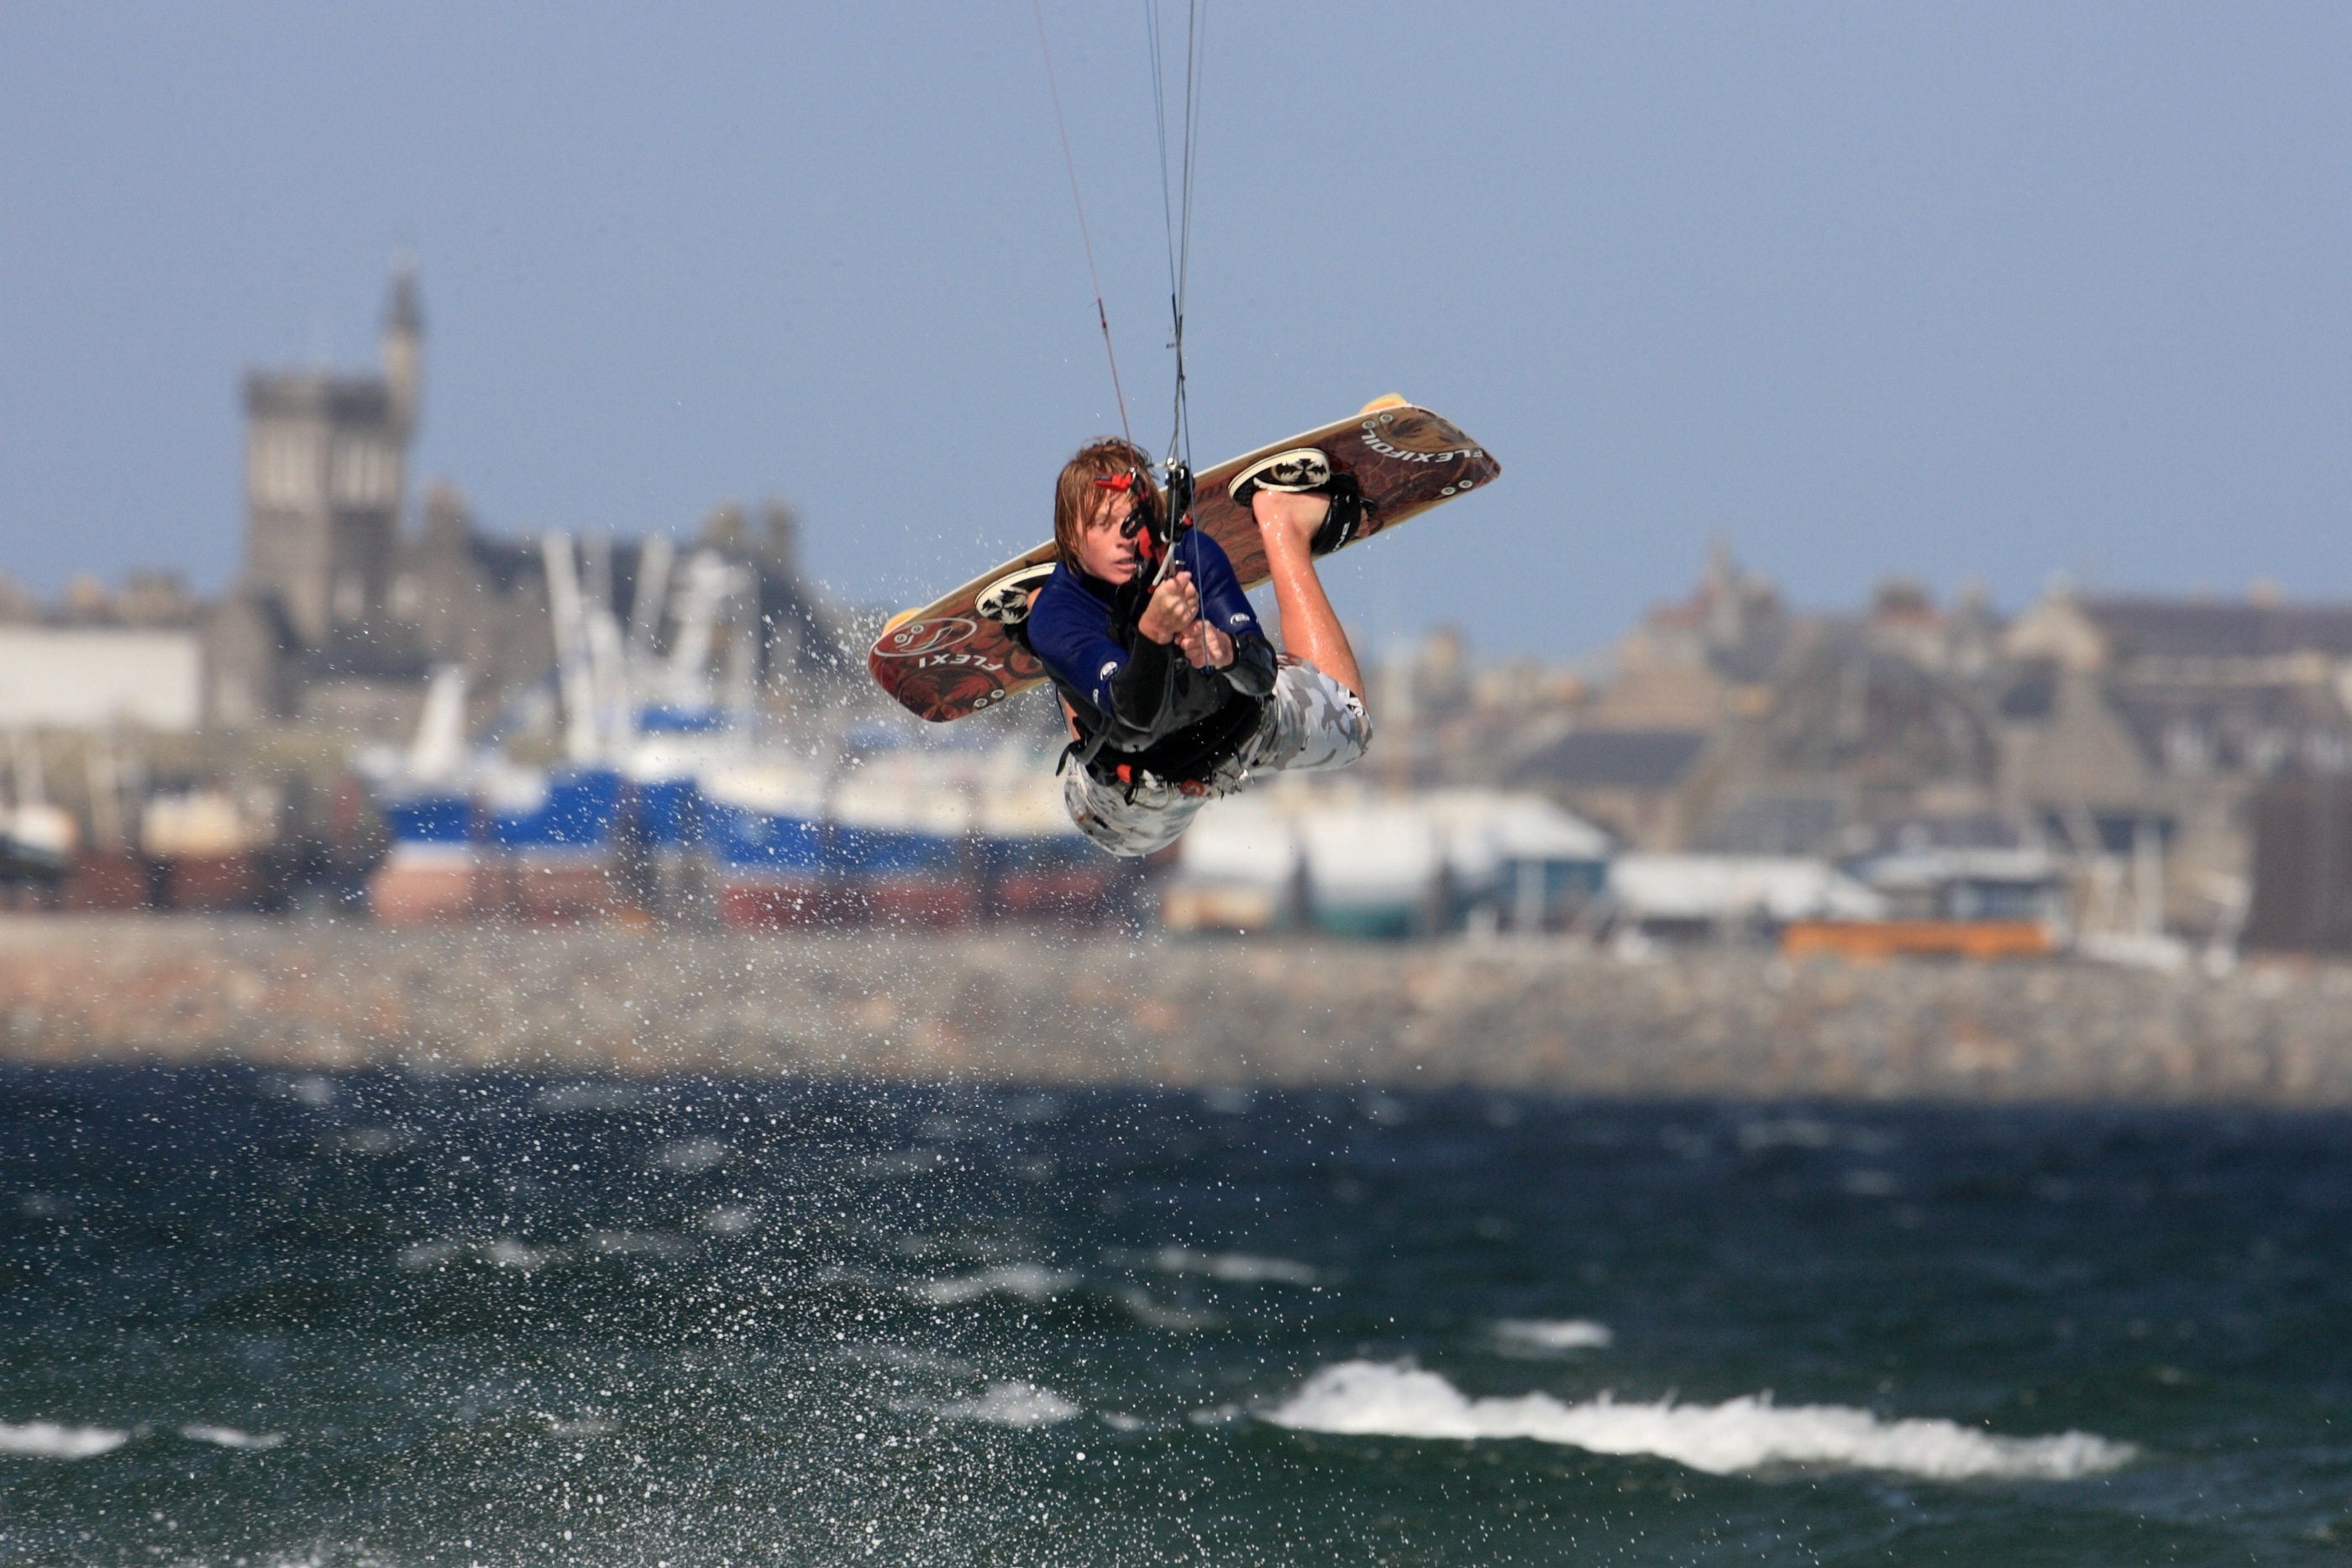 Kitesurfer Robin Snuggs see here competing at Fraserburgh beach. Picutre by Ian Edmondson /www.expix.co.uk